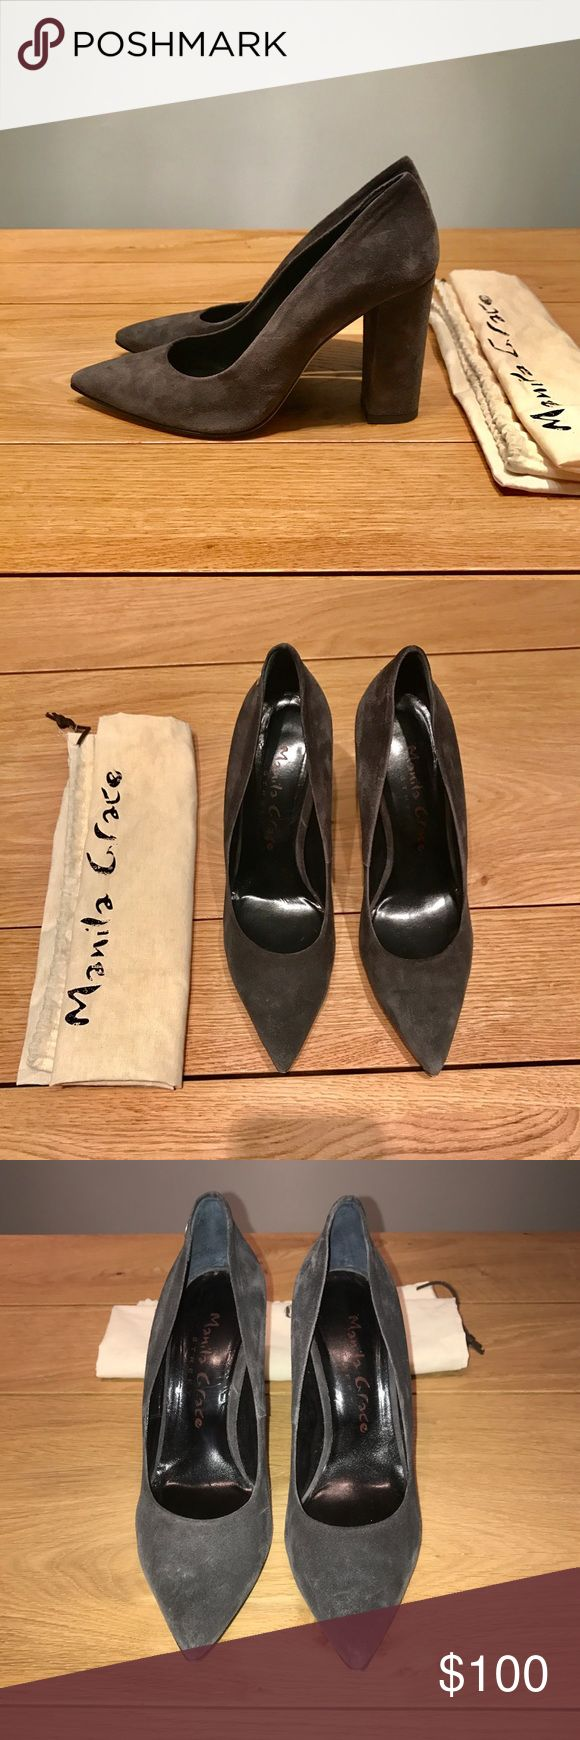 Manila Grace Gray Point Court Suede Heels Sz 39 Manila Grace Gray Suede Pointed Court Shoes Size 39.  Shoes bought in Italy and worn out once - good condition shoe fits true to size 4 inch block heel. Comes with dust bag manila grace Shoes Heels